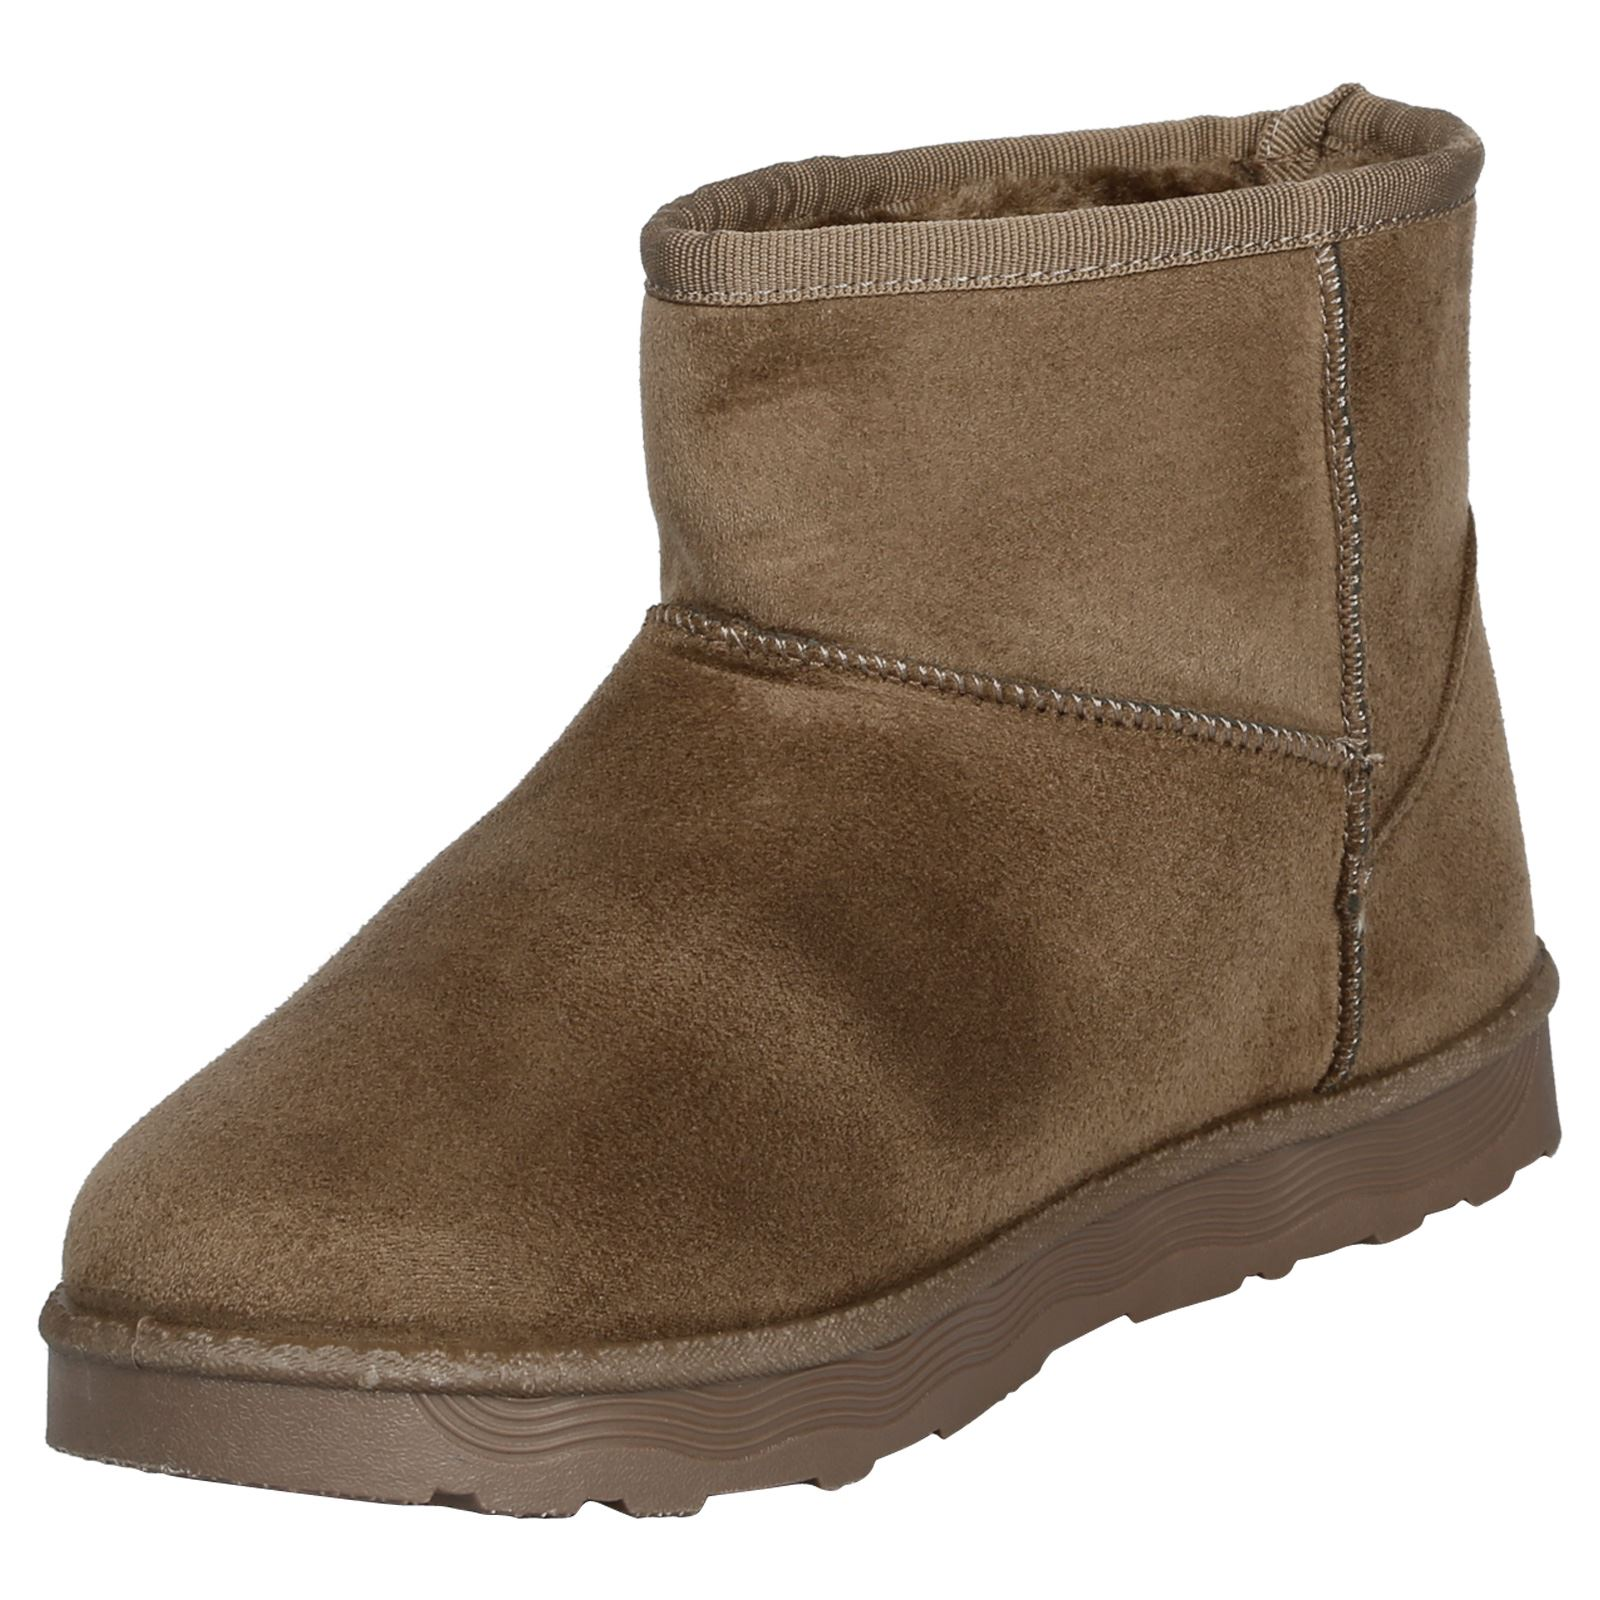 Naomi-Womens-Platfrom-Flat-Fur-Lined-Pull-On-Snug-Snow-Boots-Casual-Ladies-Size thumbnail 16